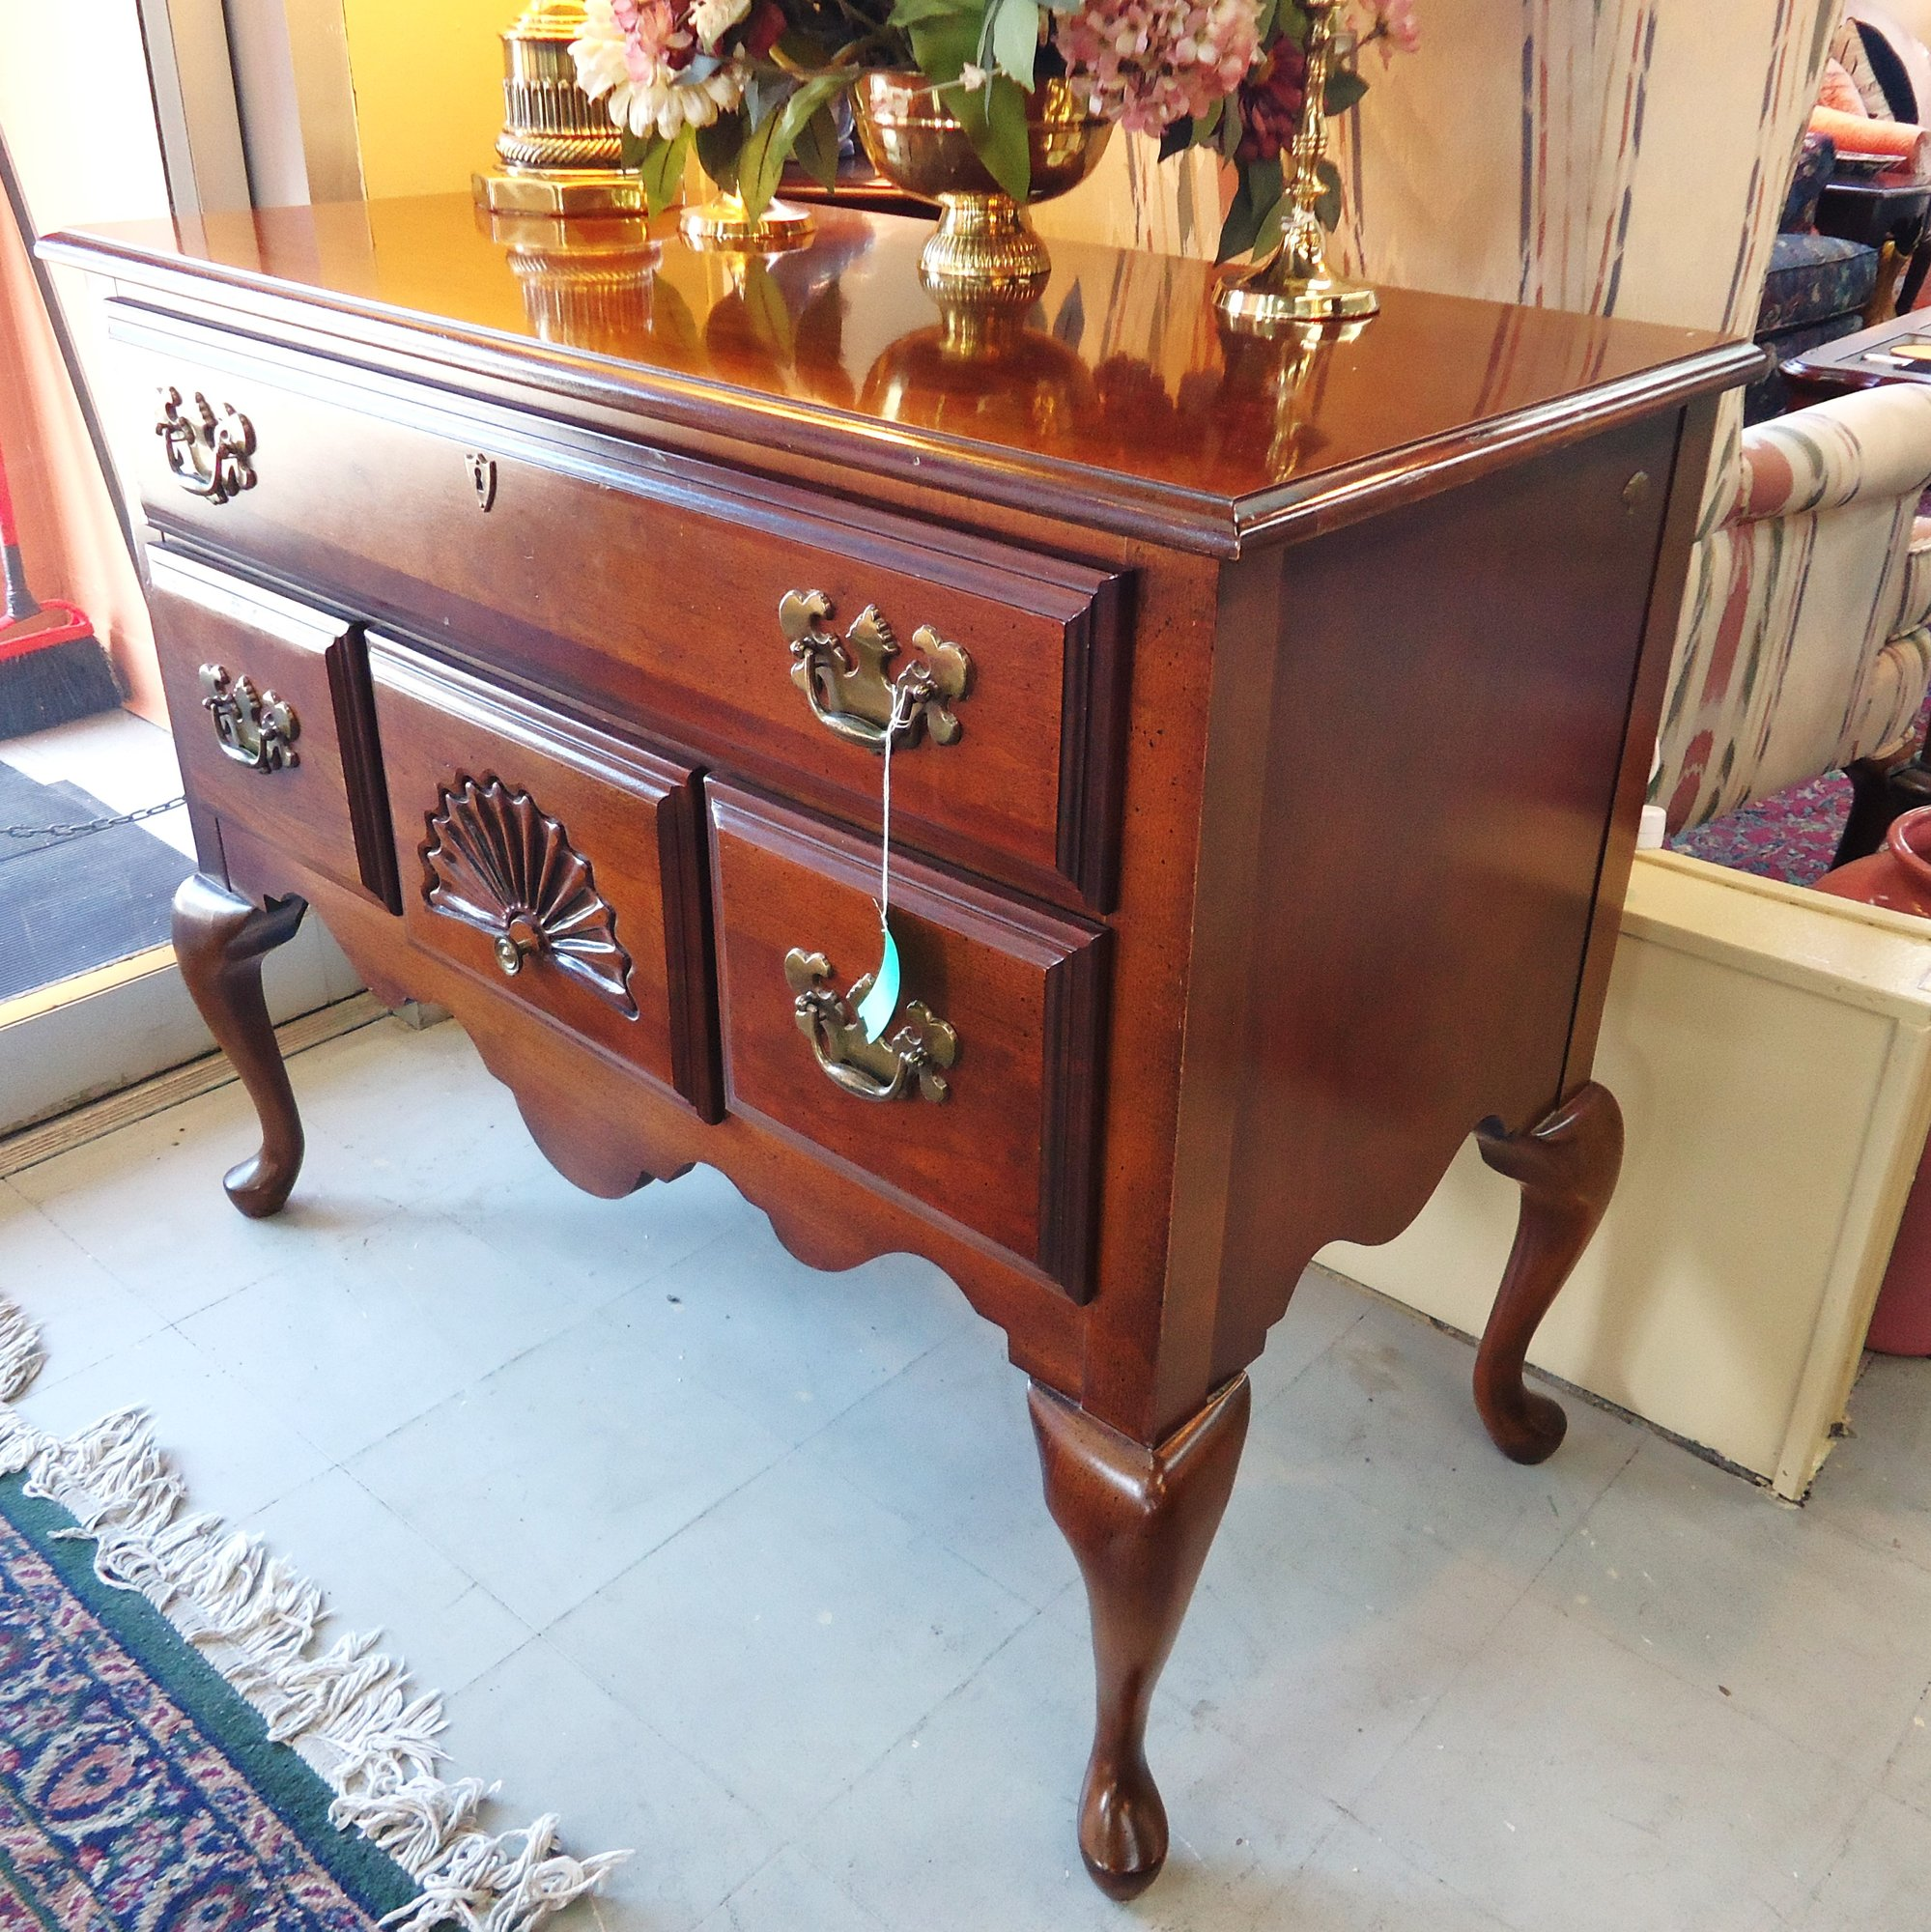 Used Furniture Gallery: 1-14705 American Drew Cherry Lowboy